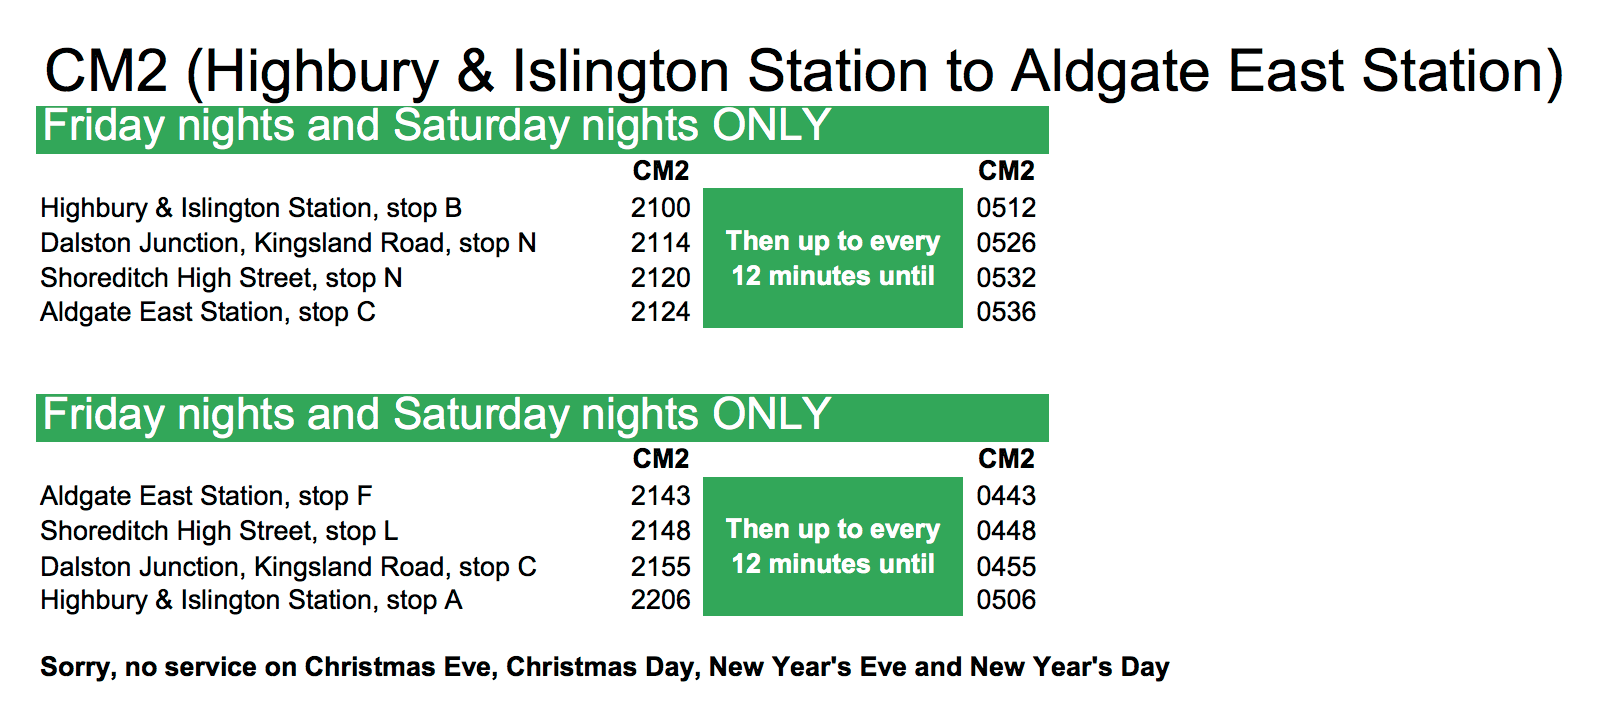 citymapper timetable cm2 proposal